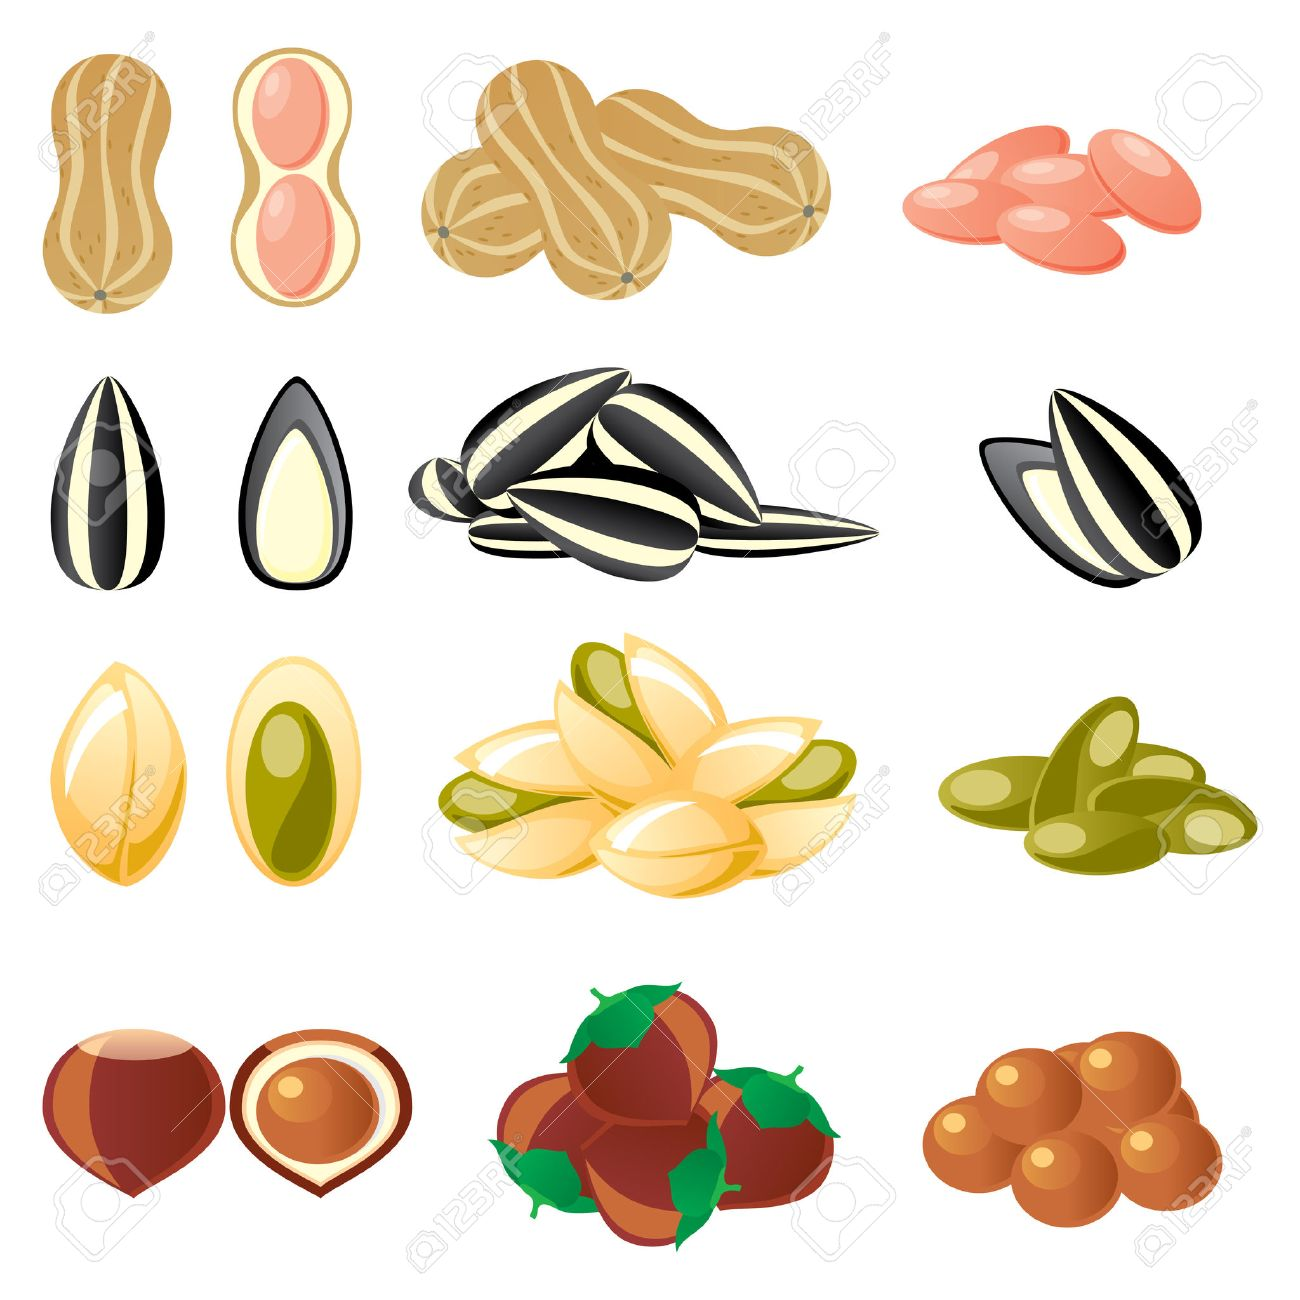 set of  images of nuts and seeds Stock Vector - 7300435